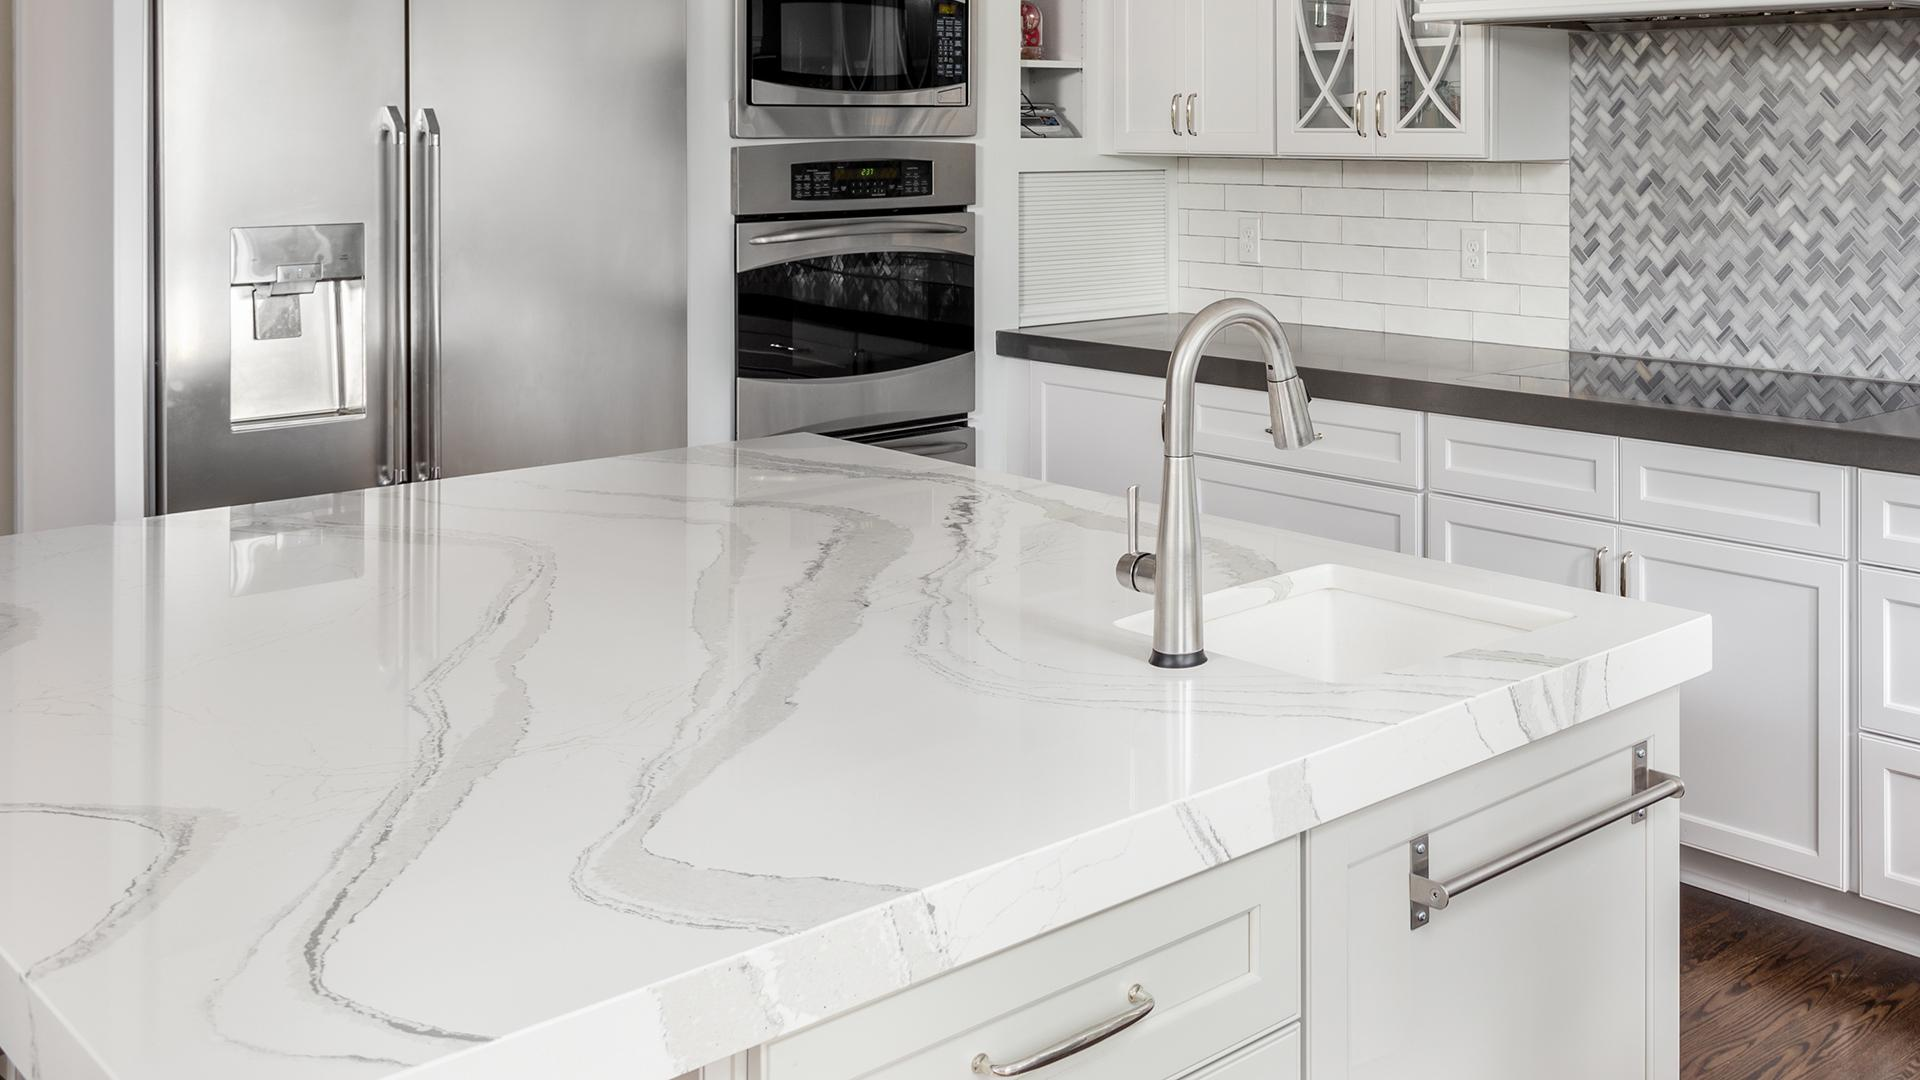 How To DIY Faux Marble Countertops For Under $100, According ...